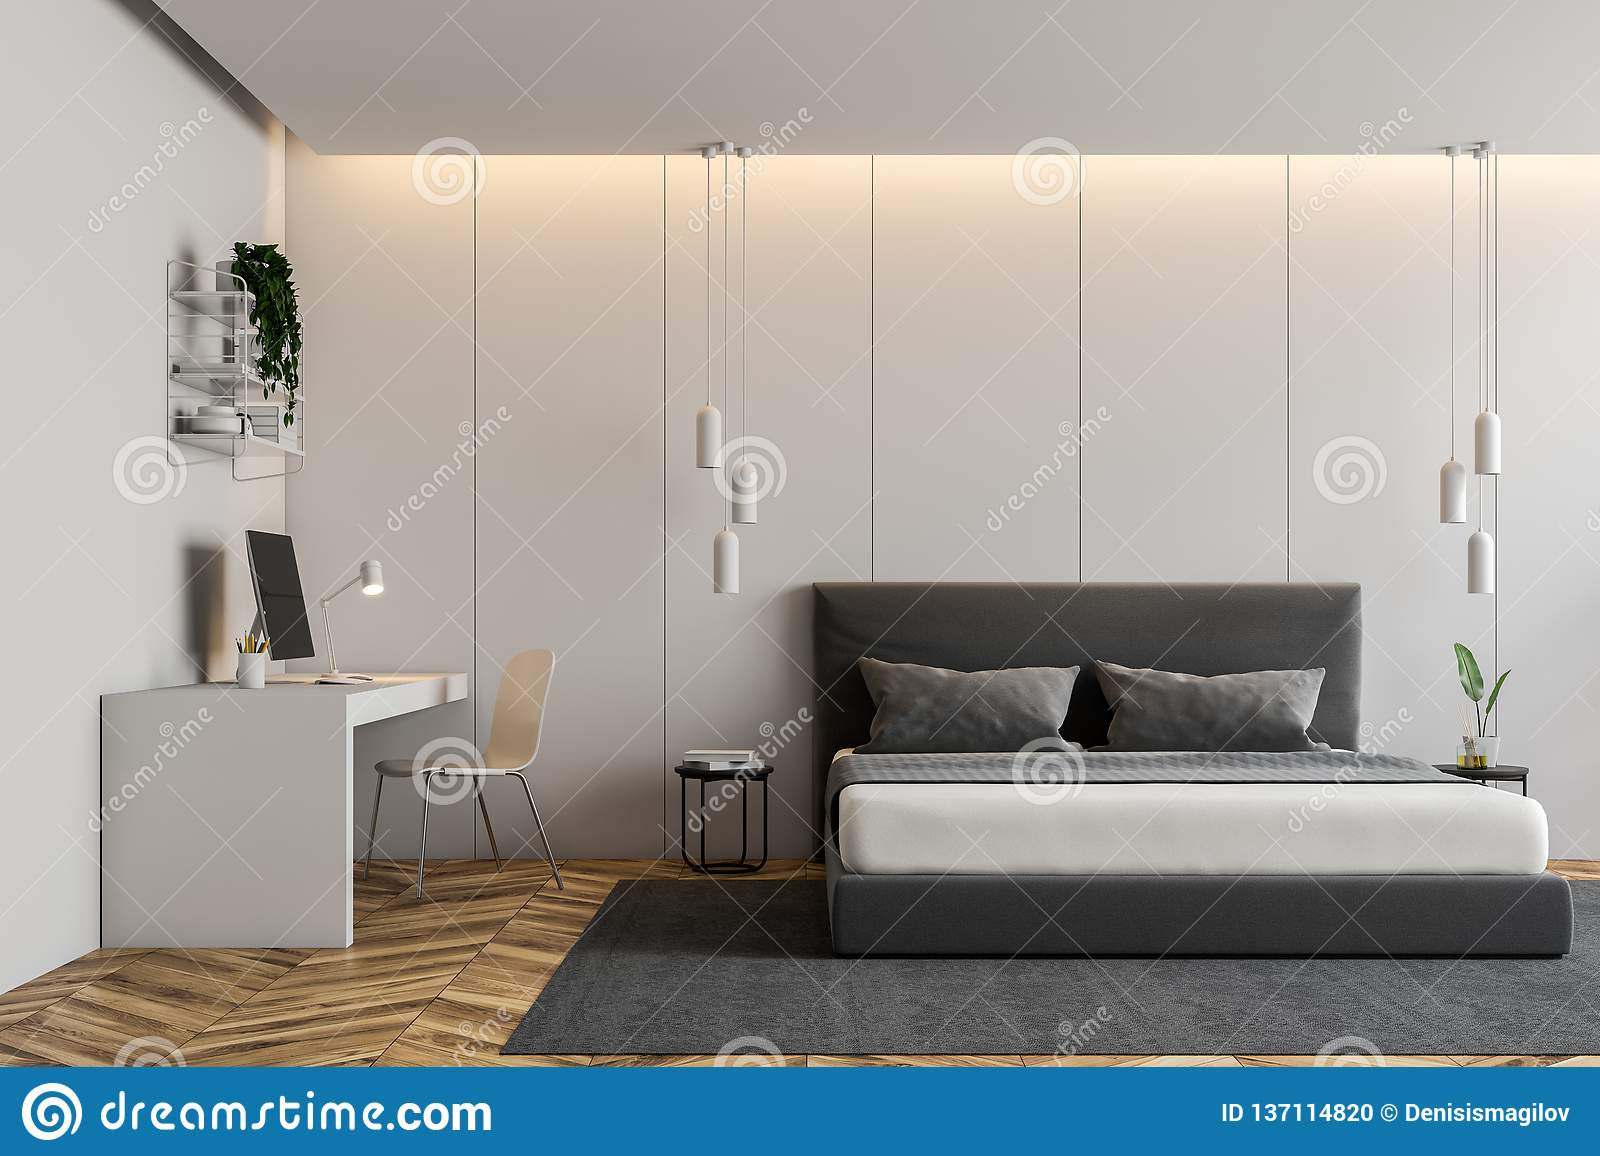 L Desk White For Your Dwelling Workplace Interior of modern bedroom with white walls, wooden floor, gray master bed  on carpet and white computer table. 3d rendering